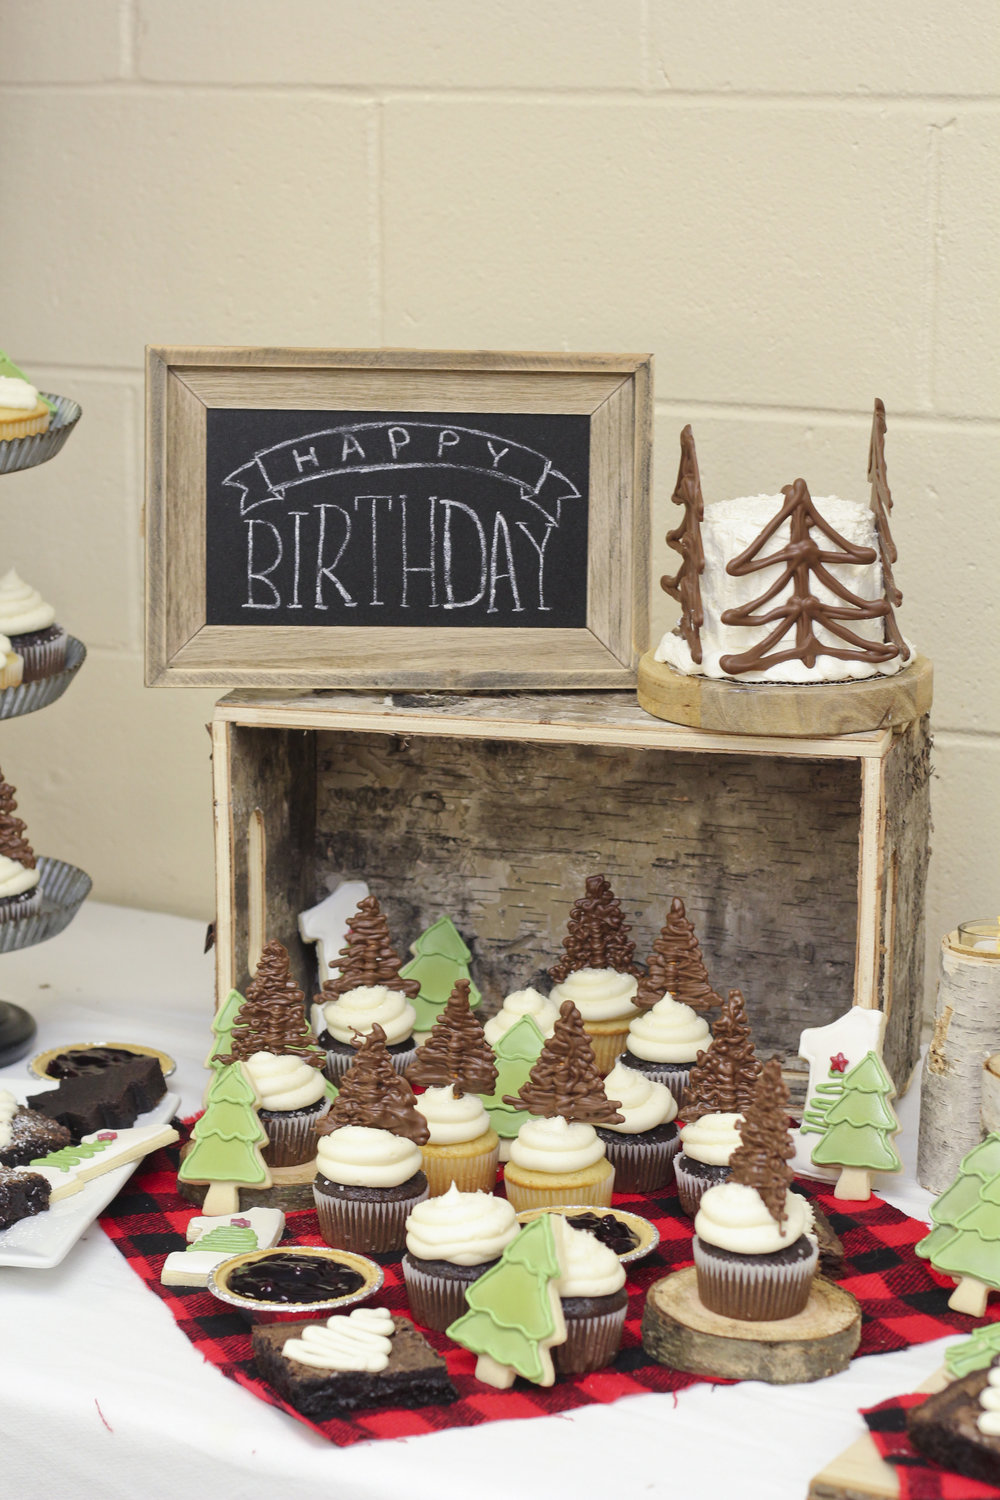 Lumberjack first birthday party smash cake with chocolate pretzel trees. Chocolate cupcakes, vanilla cupcakes, pine tree shortbread cookies, and mini blueberry pies make the perfect dessert bar for a first birthday party!